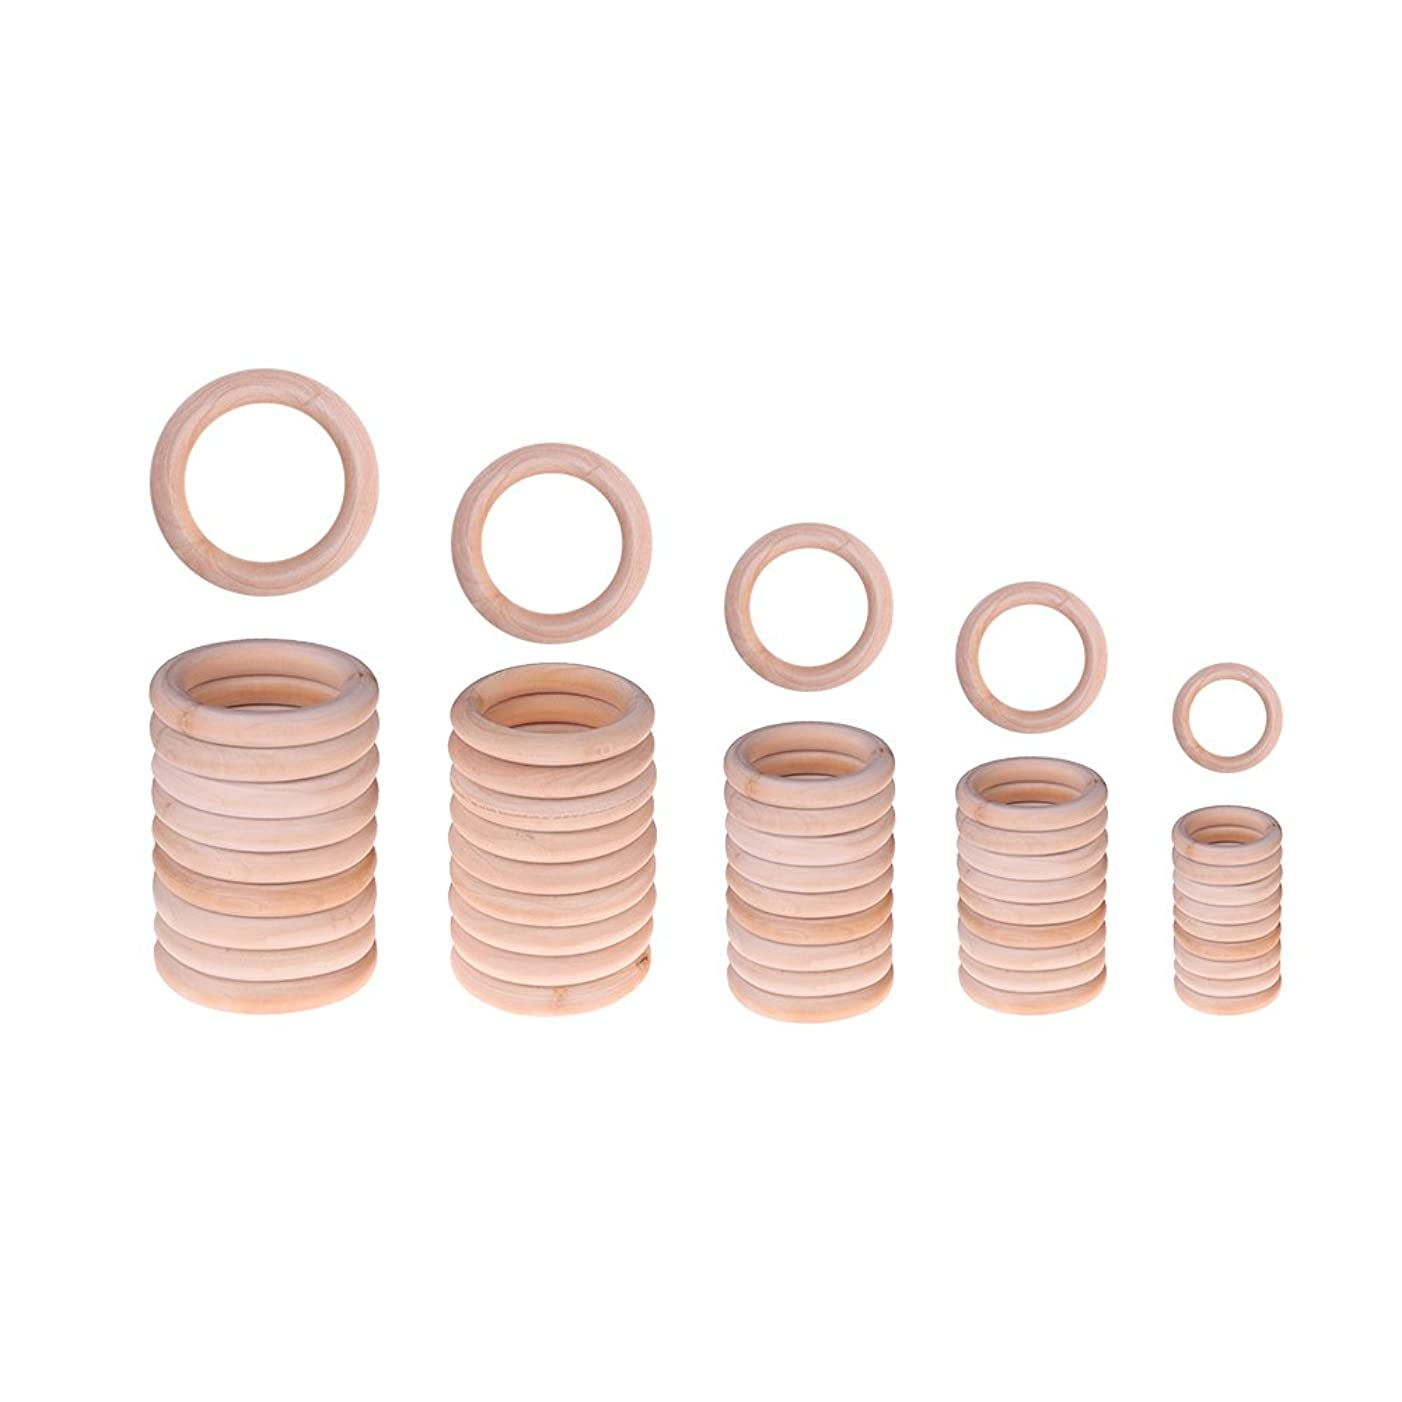 FANKUTOYS 50 Pieces Unfinished Solid Wooden Rings Natural Wood Ring for Craft, Ring Pendant and Connectors Jewelry Making